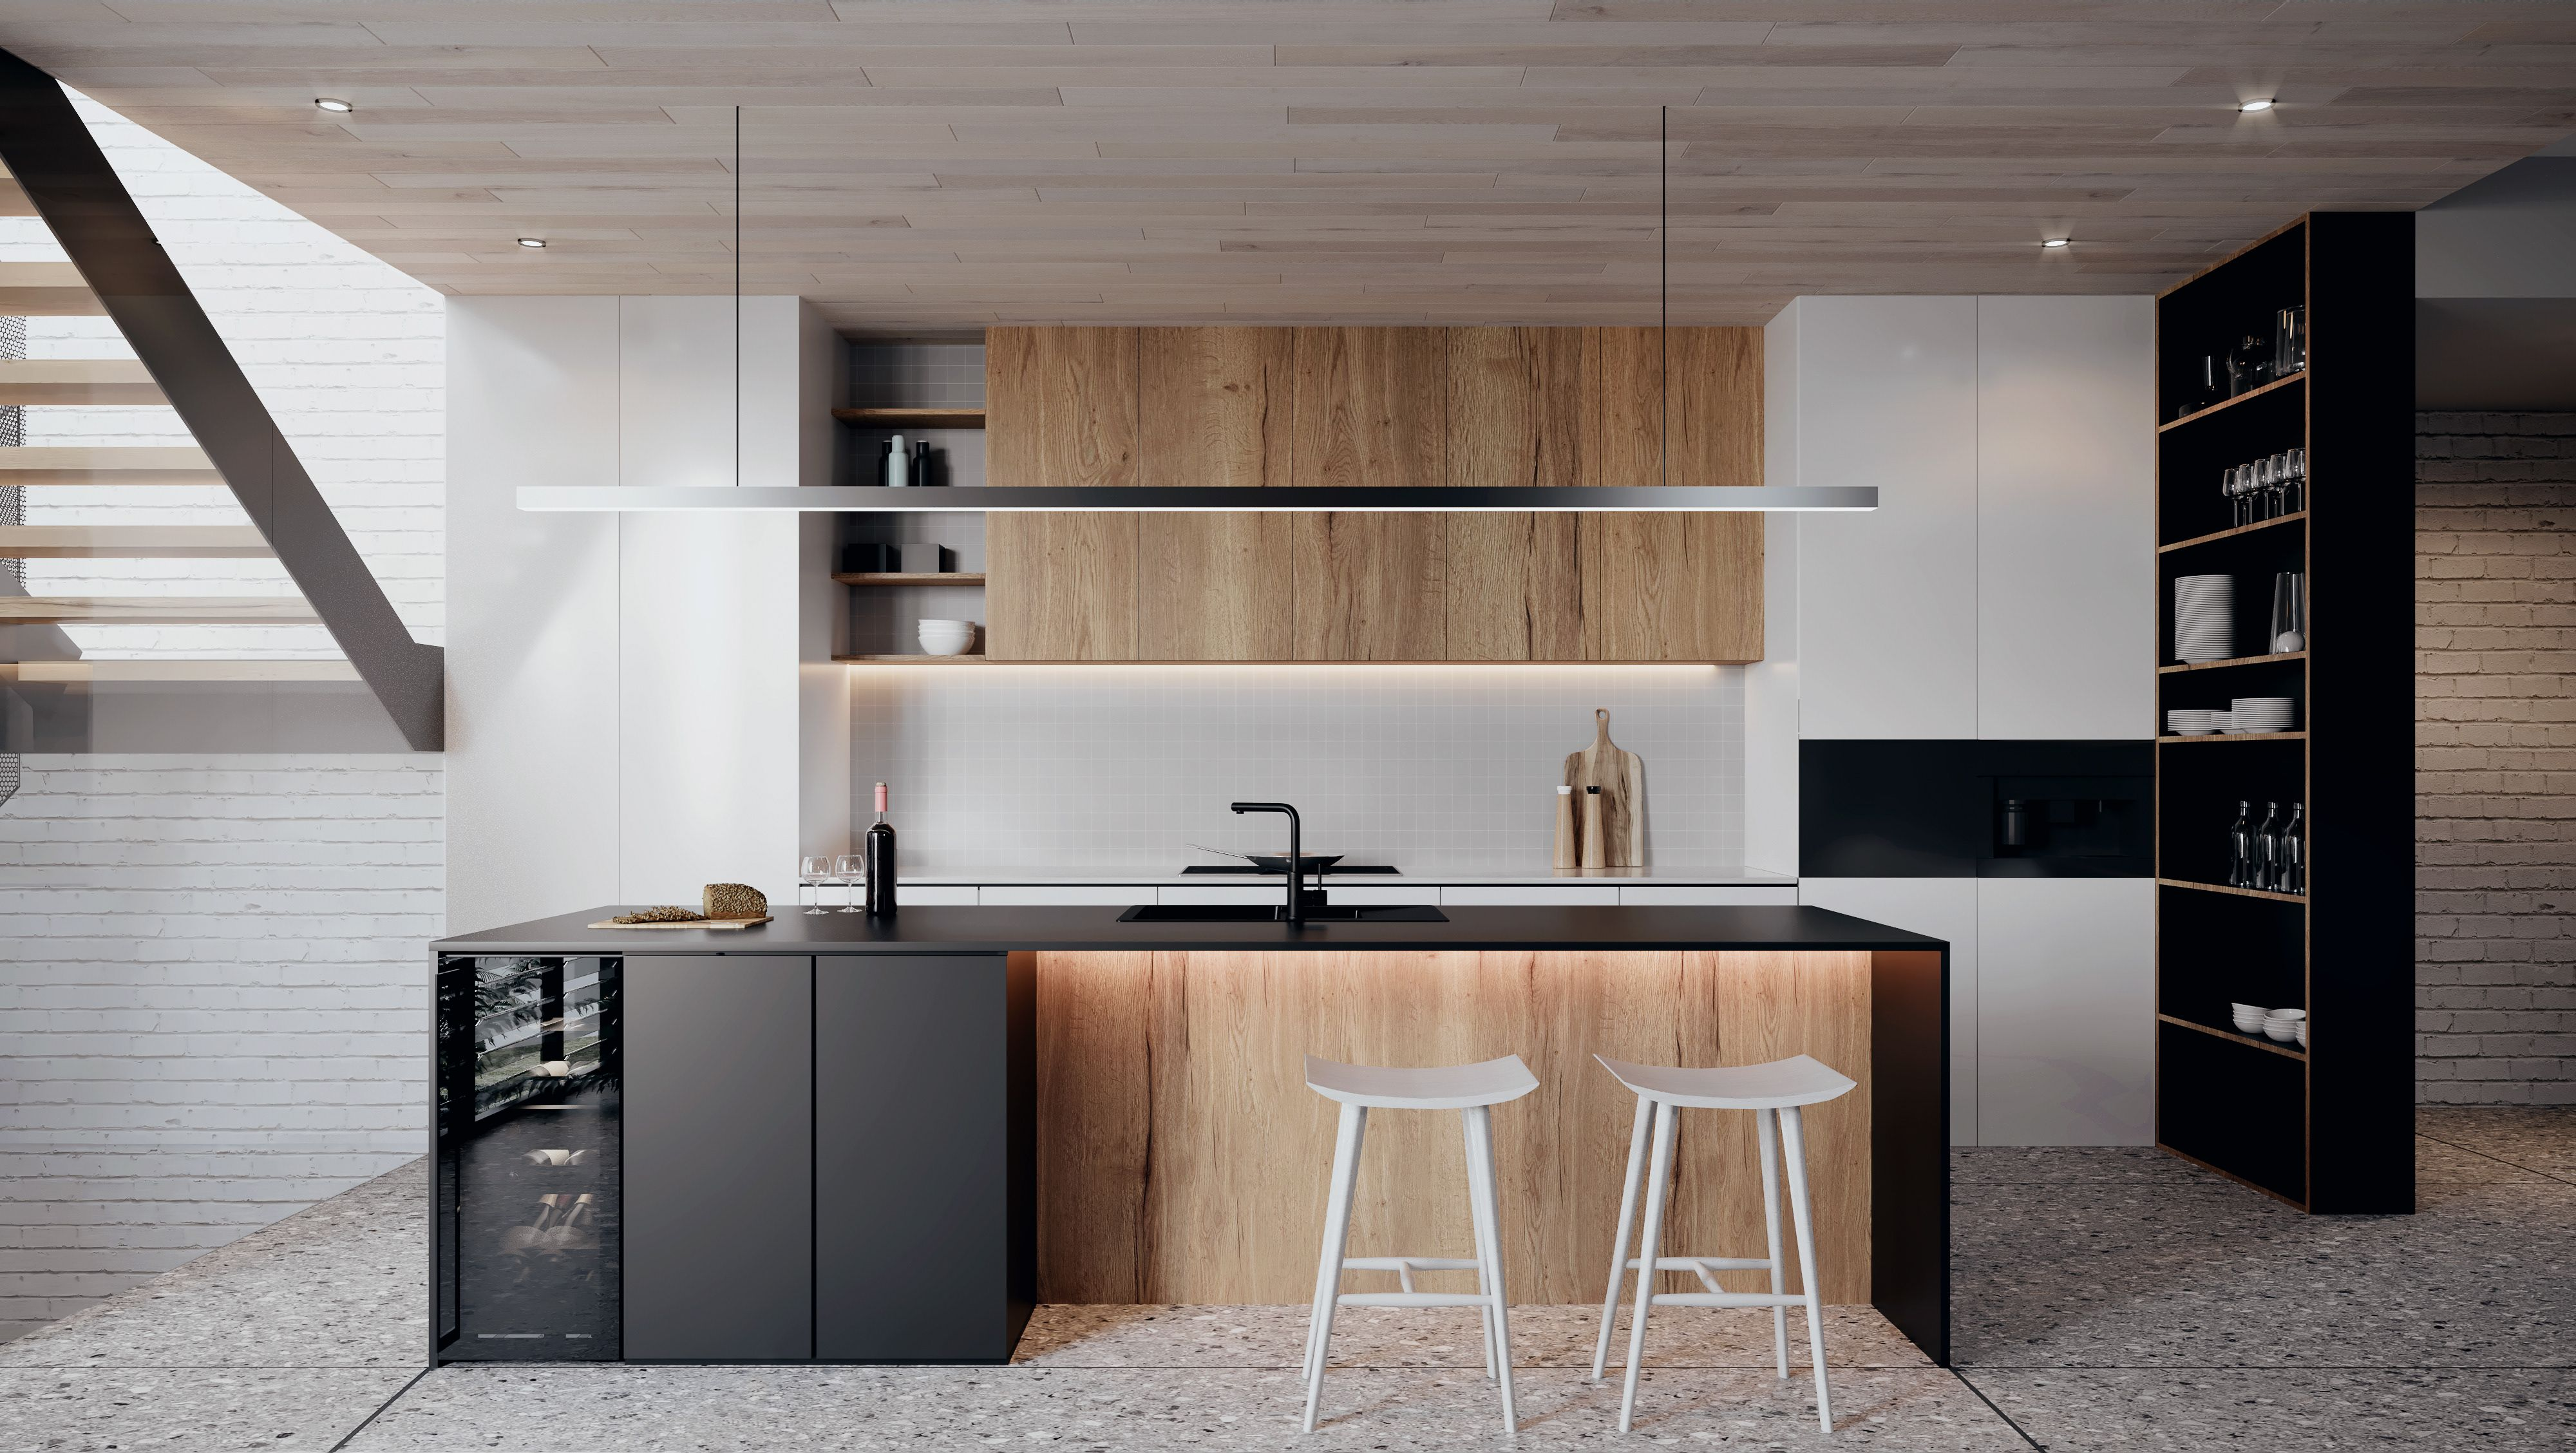 Pin By Minh Ha On House In 2018 Pinterest Kitchen Design